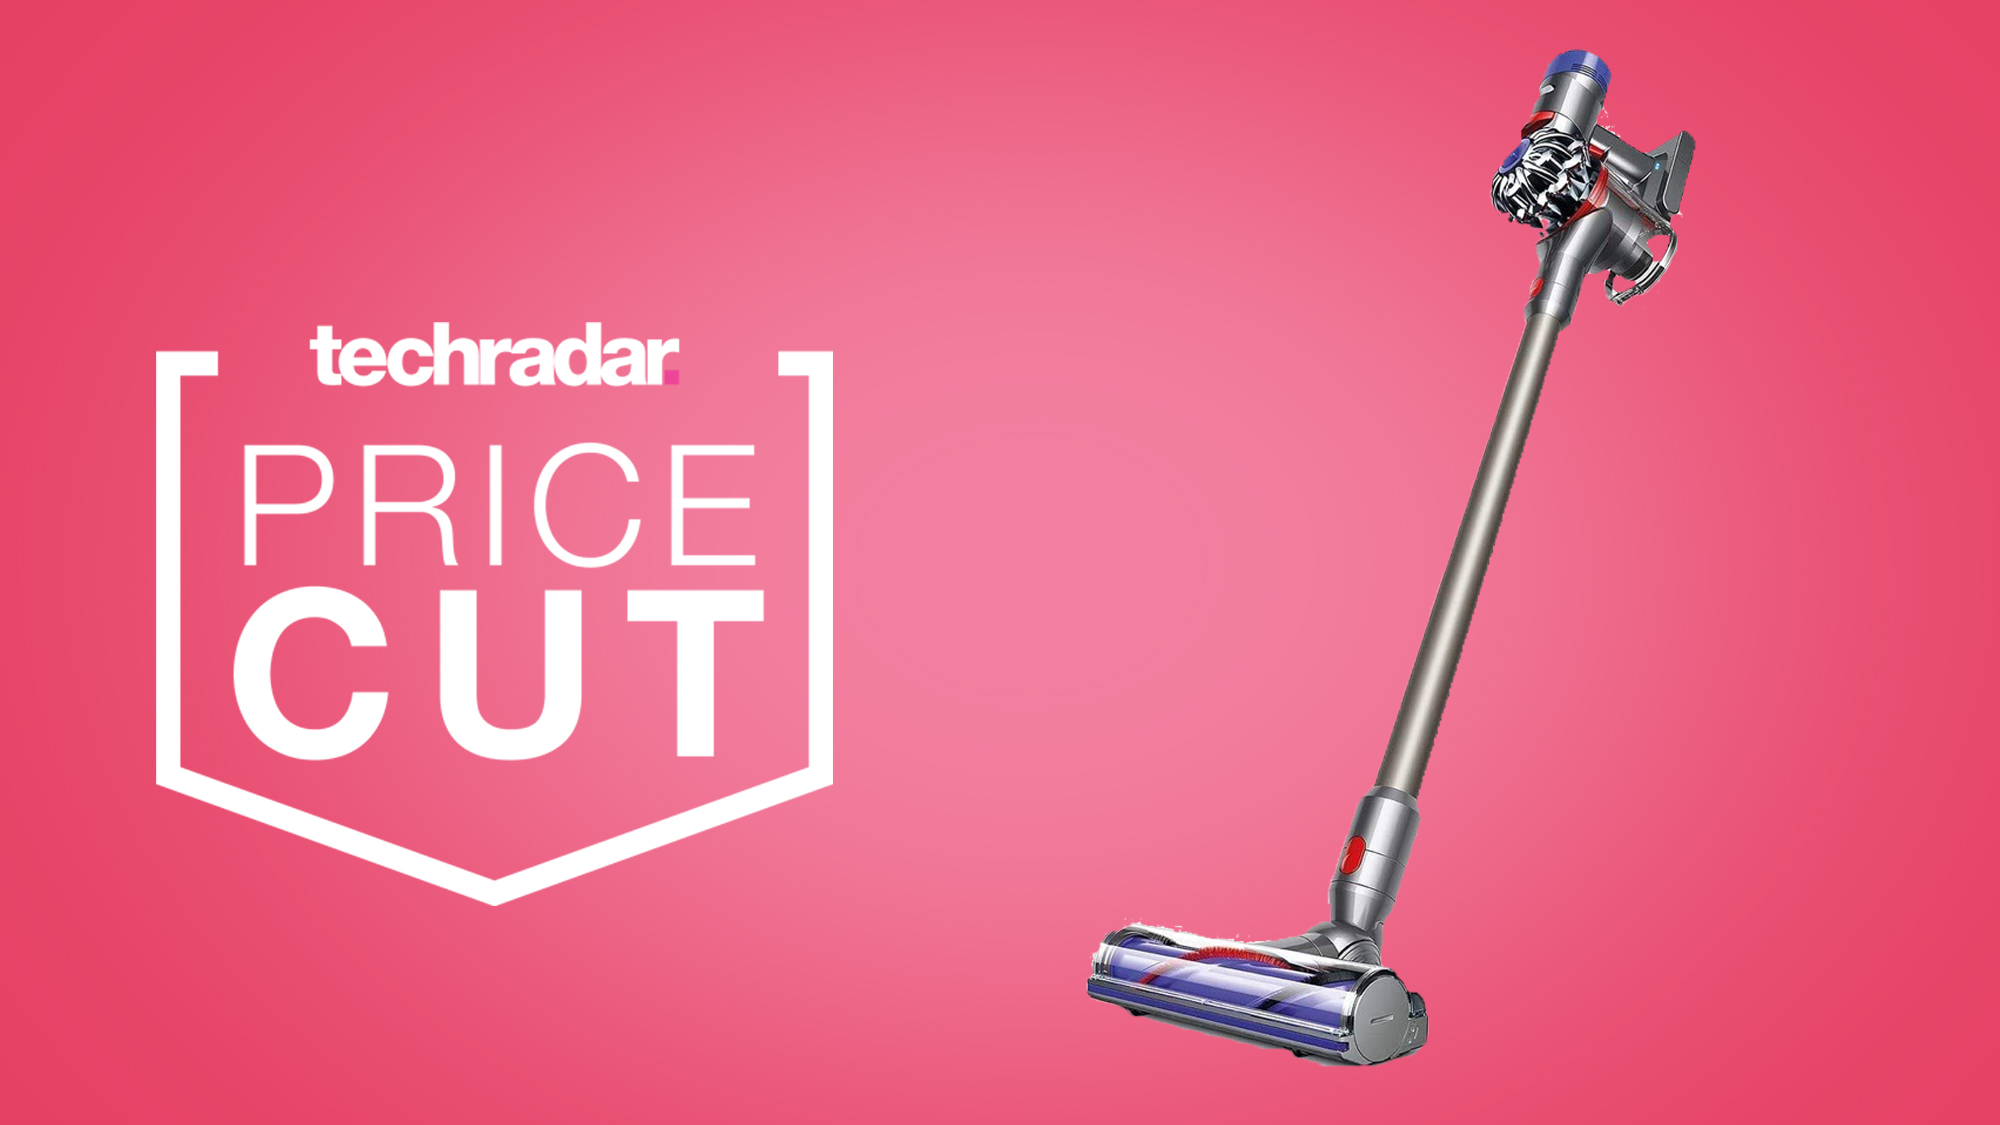 Suck up a £75 saving on this Dyson V8 Animal Extra vacuum in this fantastic deal